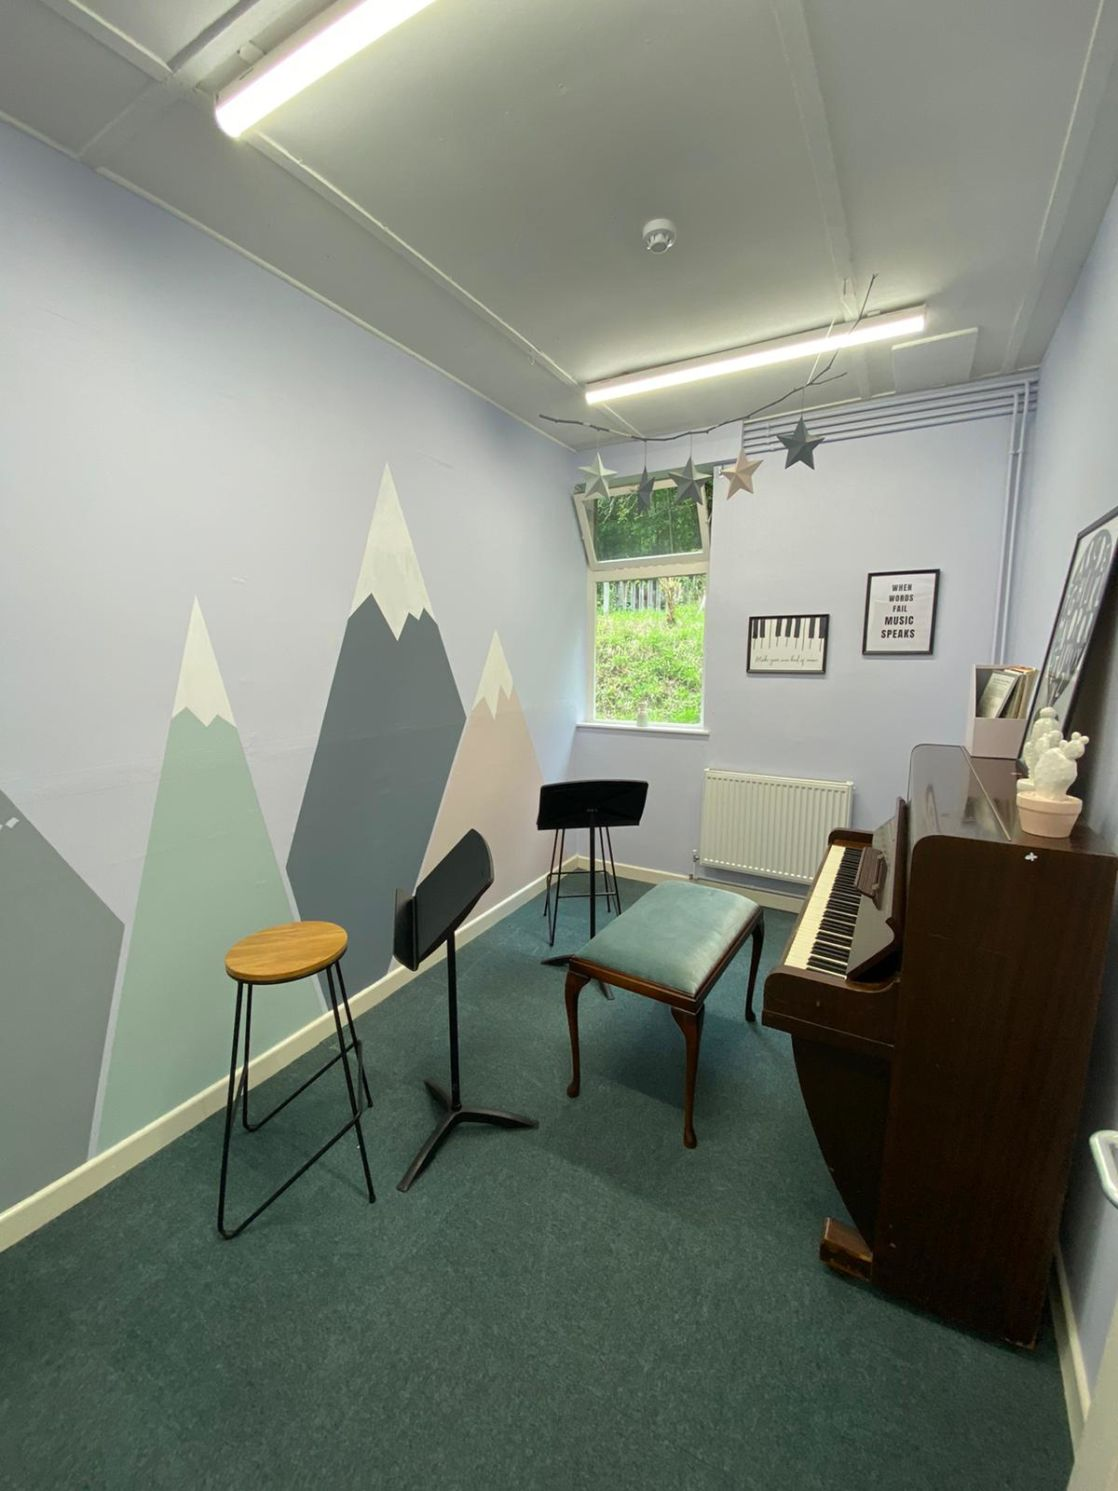 wycliffe boarding school common room for prep students